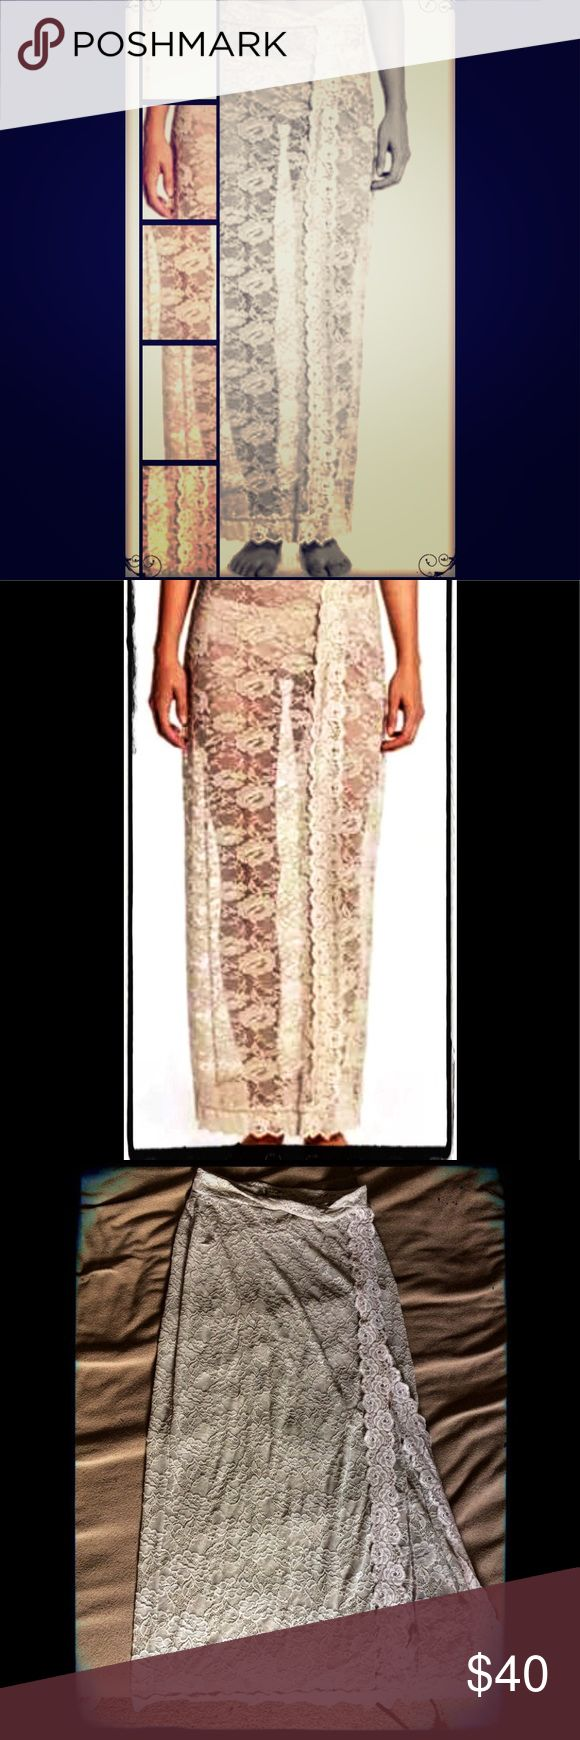 FREE PEOPLE .small. Scalloped Lace Maxi Skirt FREE PEOPLE .small. Oatmeal Scalloped Lace Maxi Skirt Overlay/Slip. Barely worn. Free People Skirts Maxi